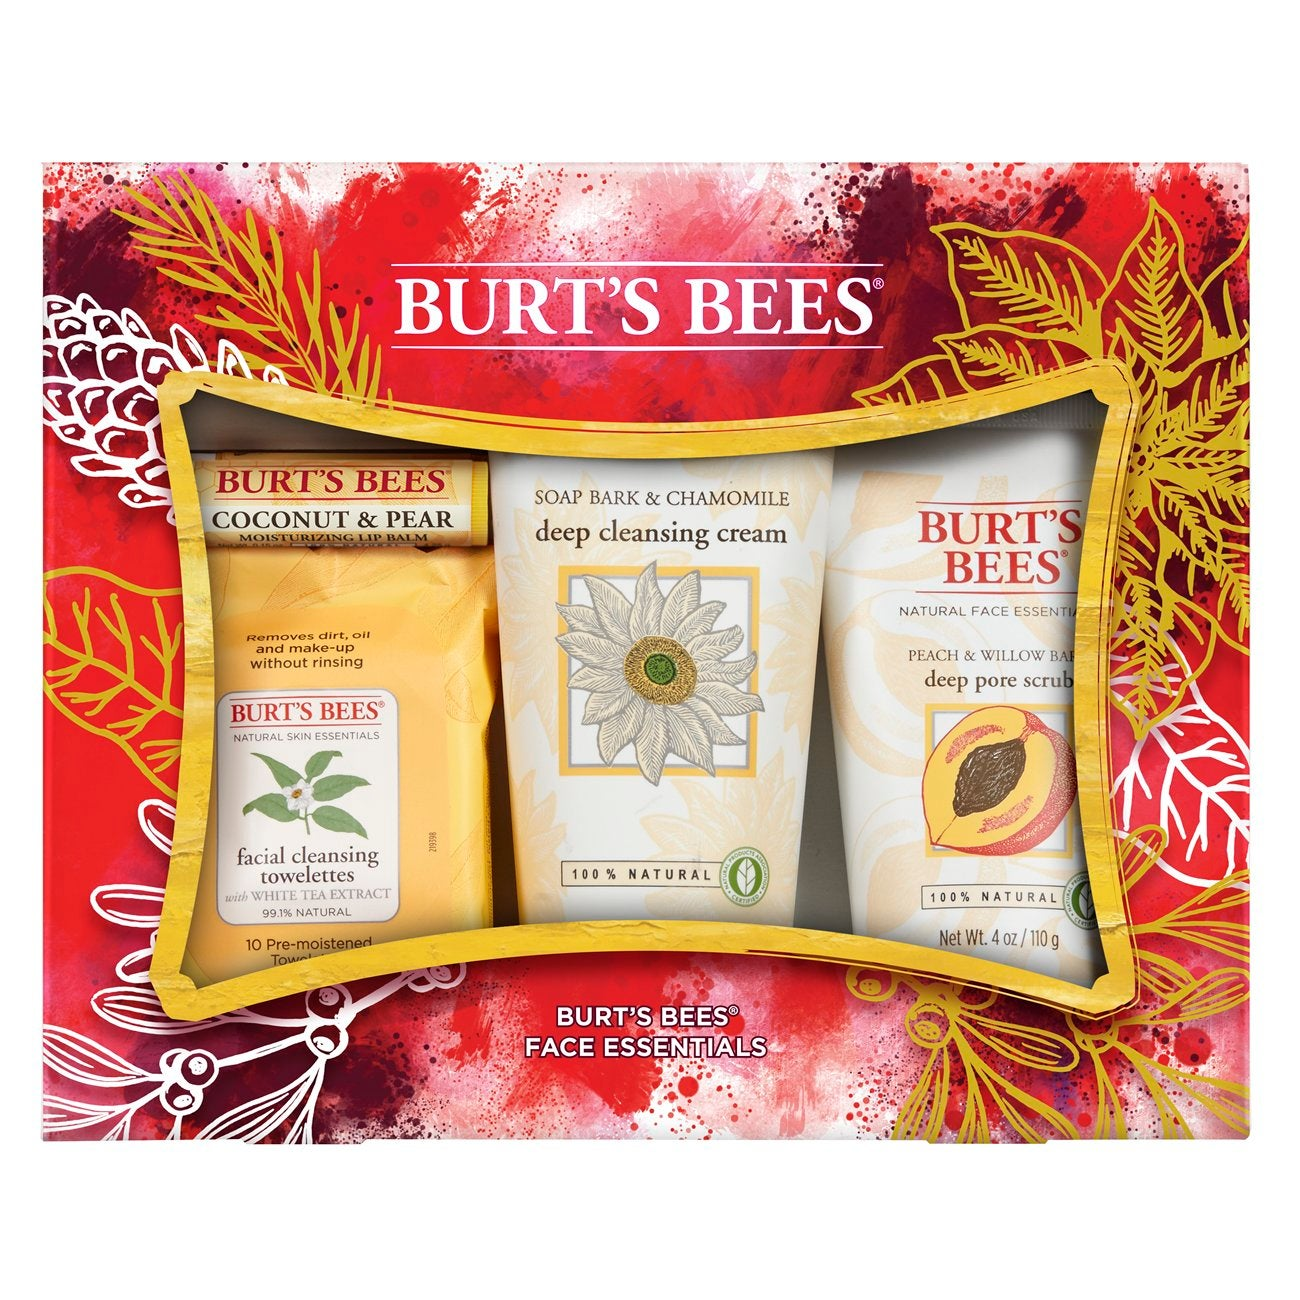 Burt's Bees Face Essentials